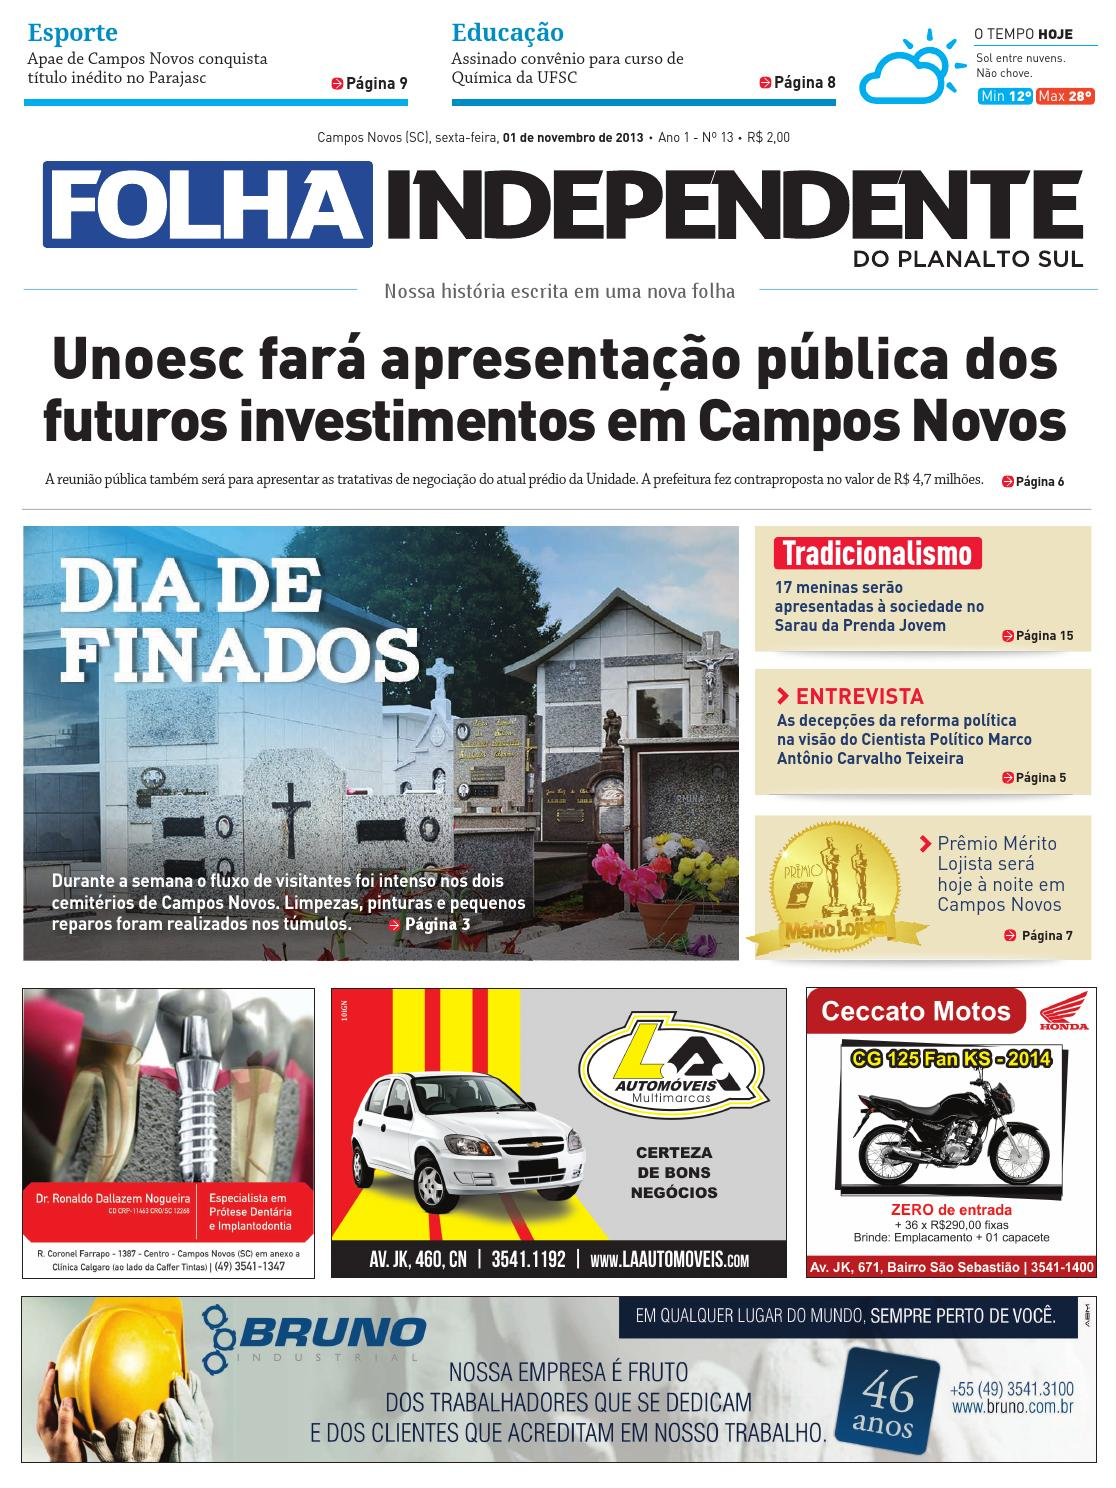 dc469c1aa Folha Independente Nº13 by Folha Independente - issuu